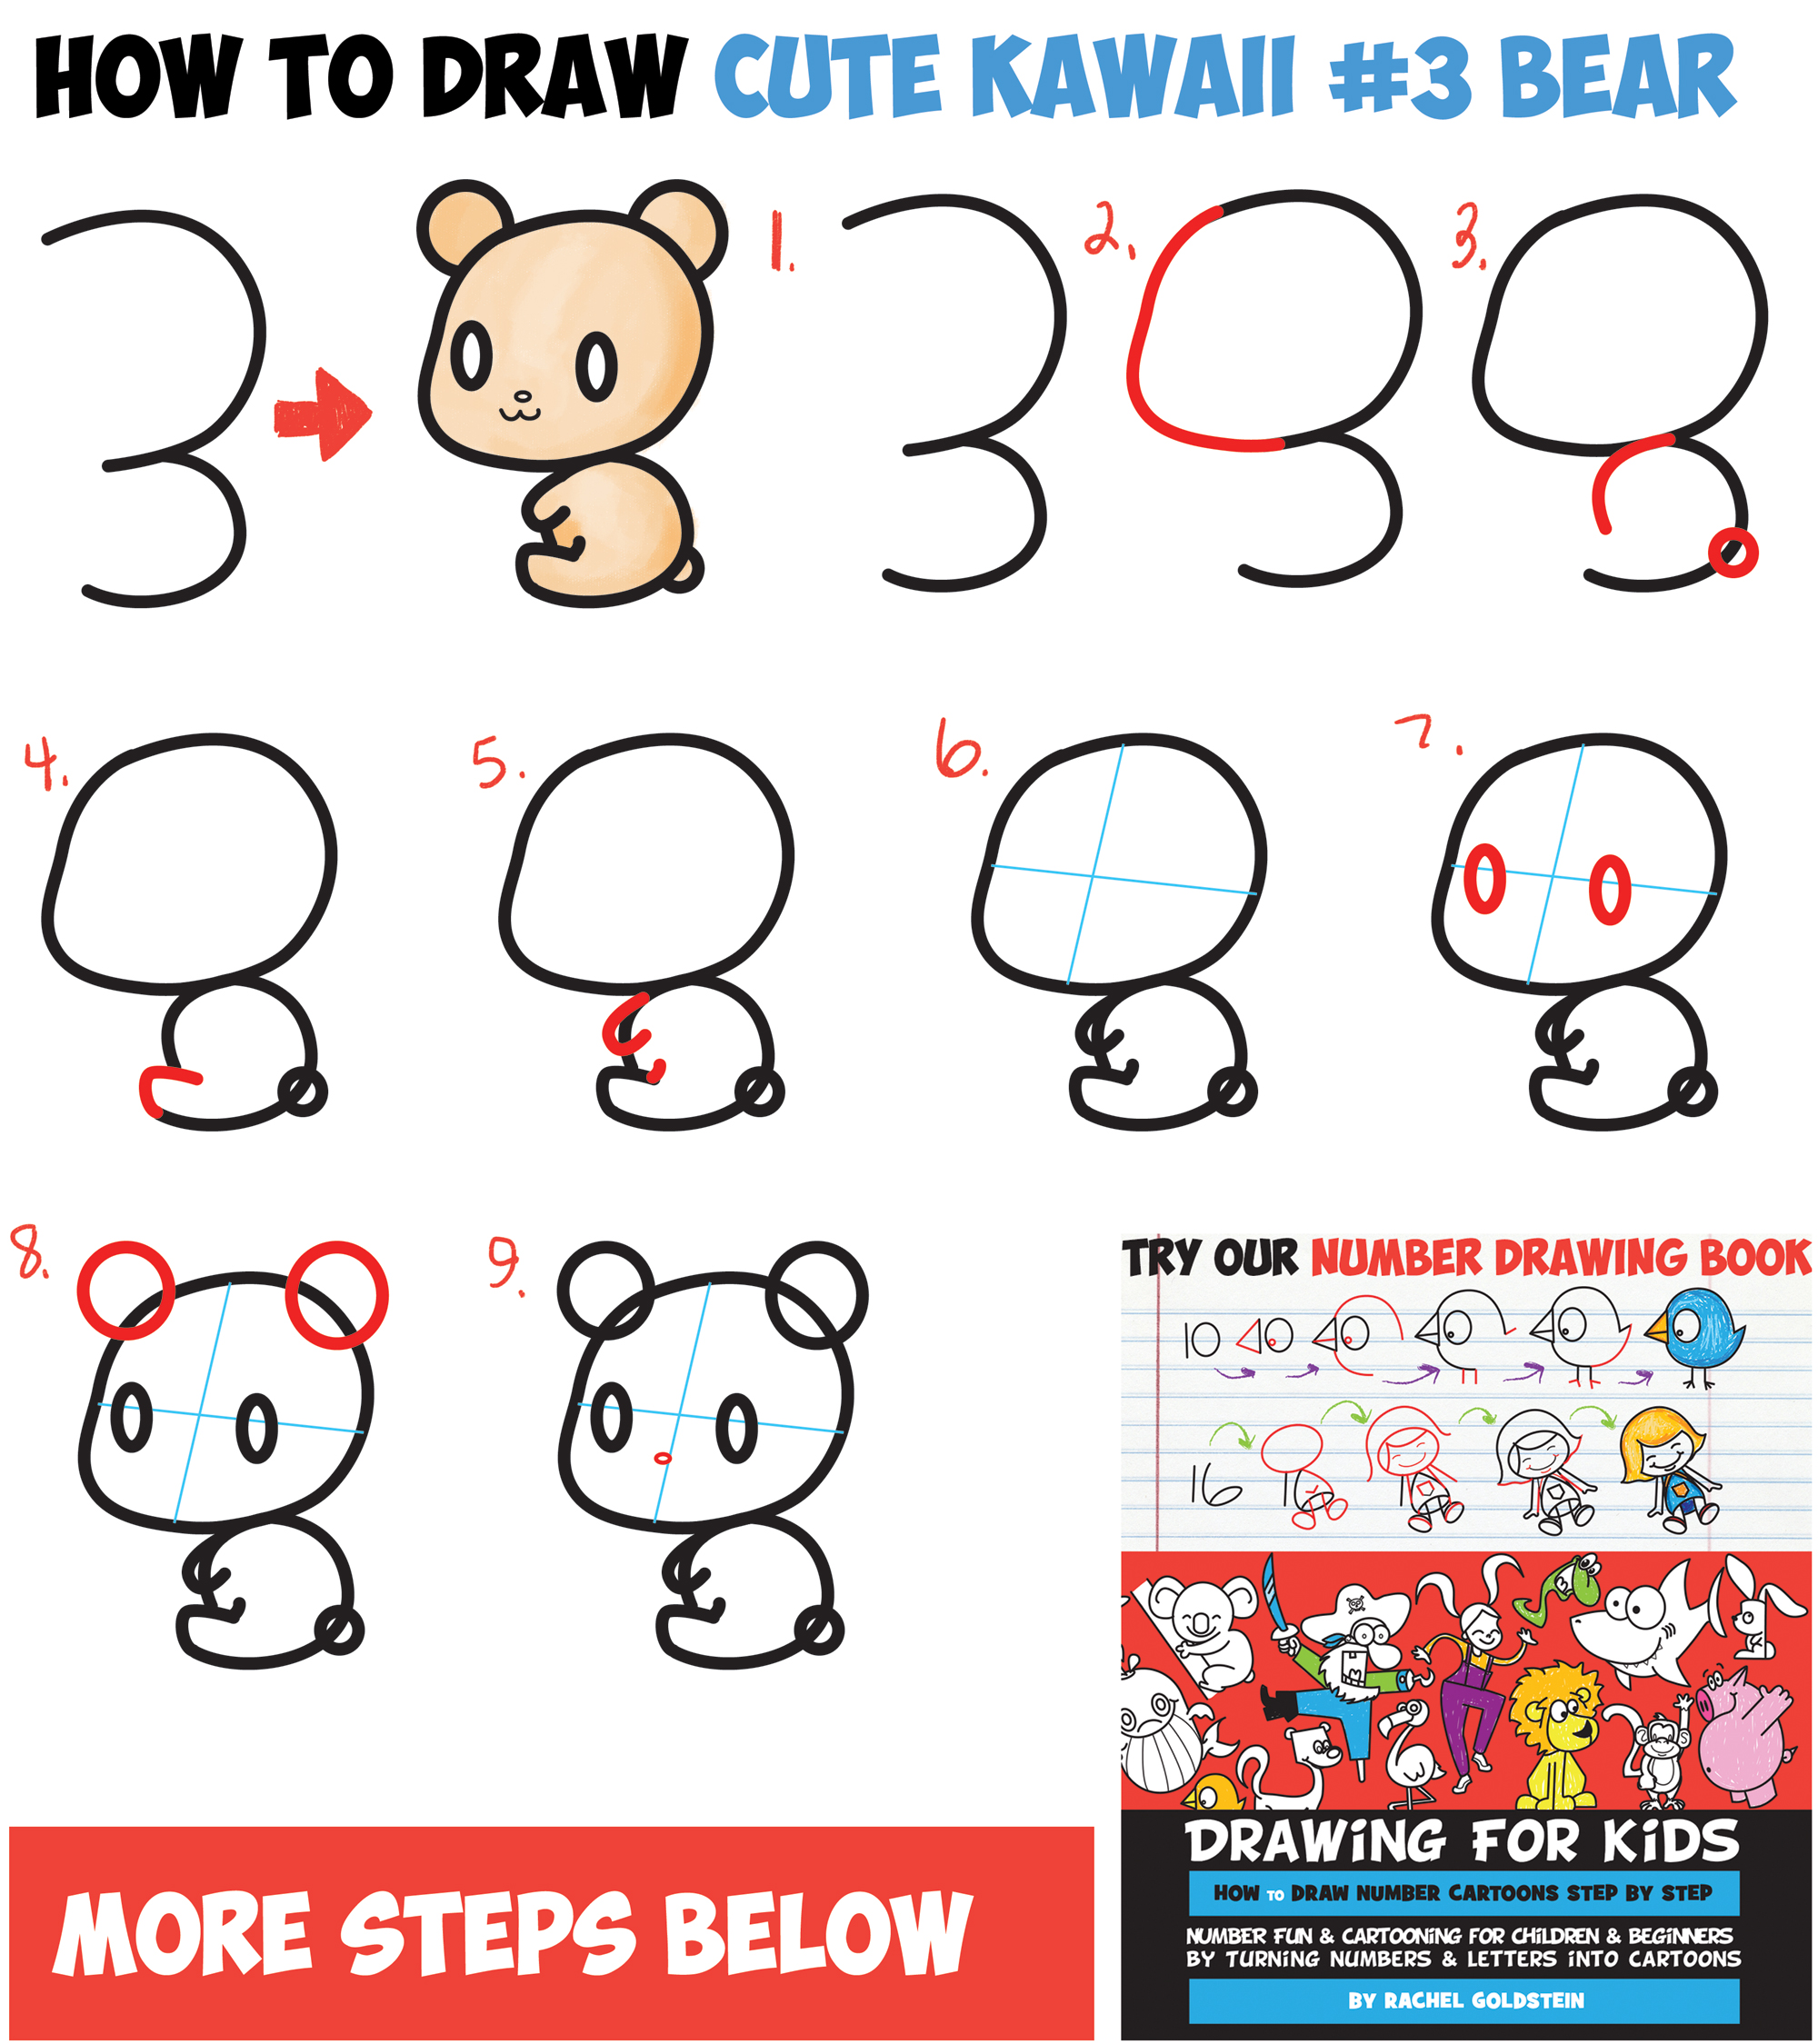 Learn How to Draw a Cute Chibi / Kawaii Cartoon #3 Shape Bear - Easy Step by Step Drawing Tutorial for Kids